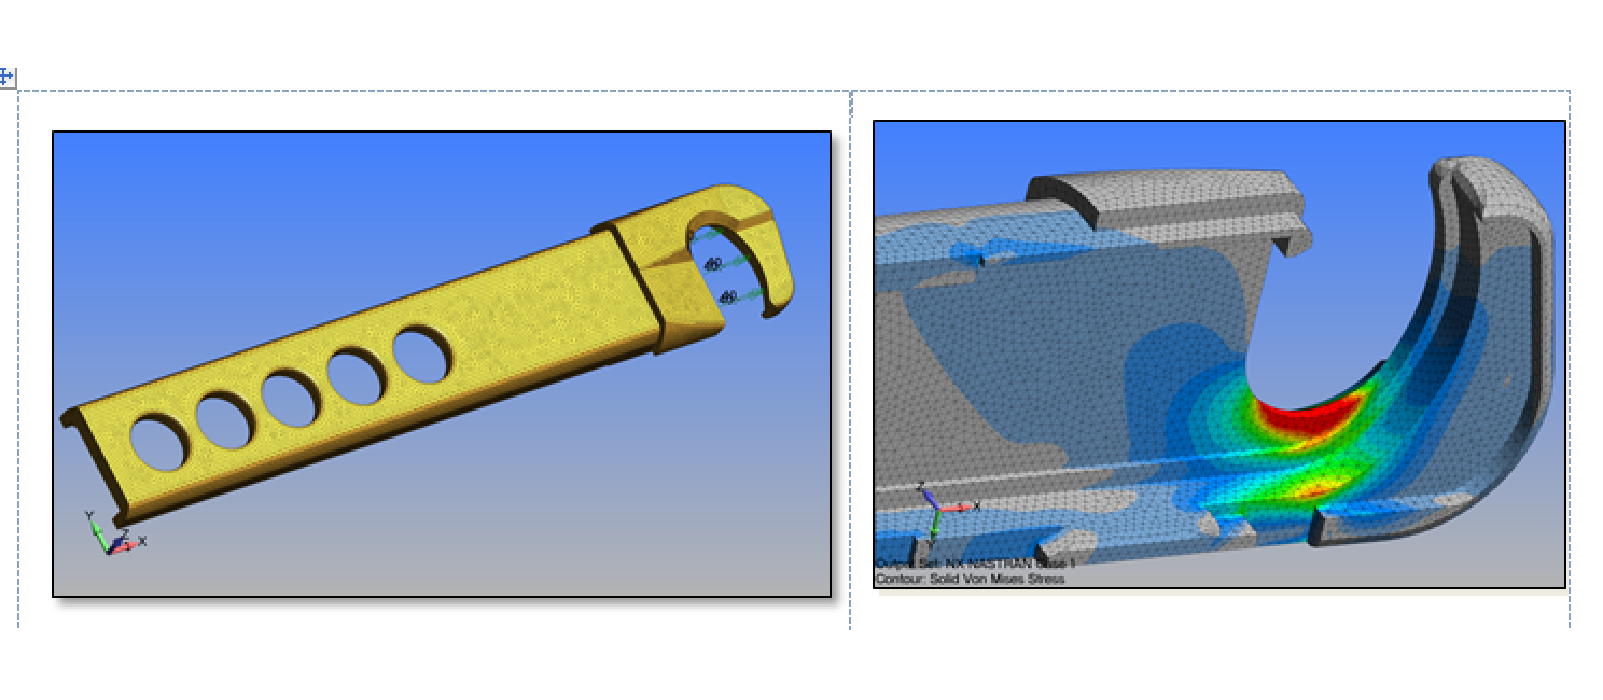 Figure 5: FEA Simulation of endoscopic surgical stapling anvil for ultimate load determination